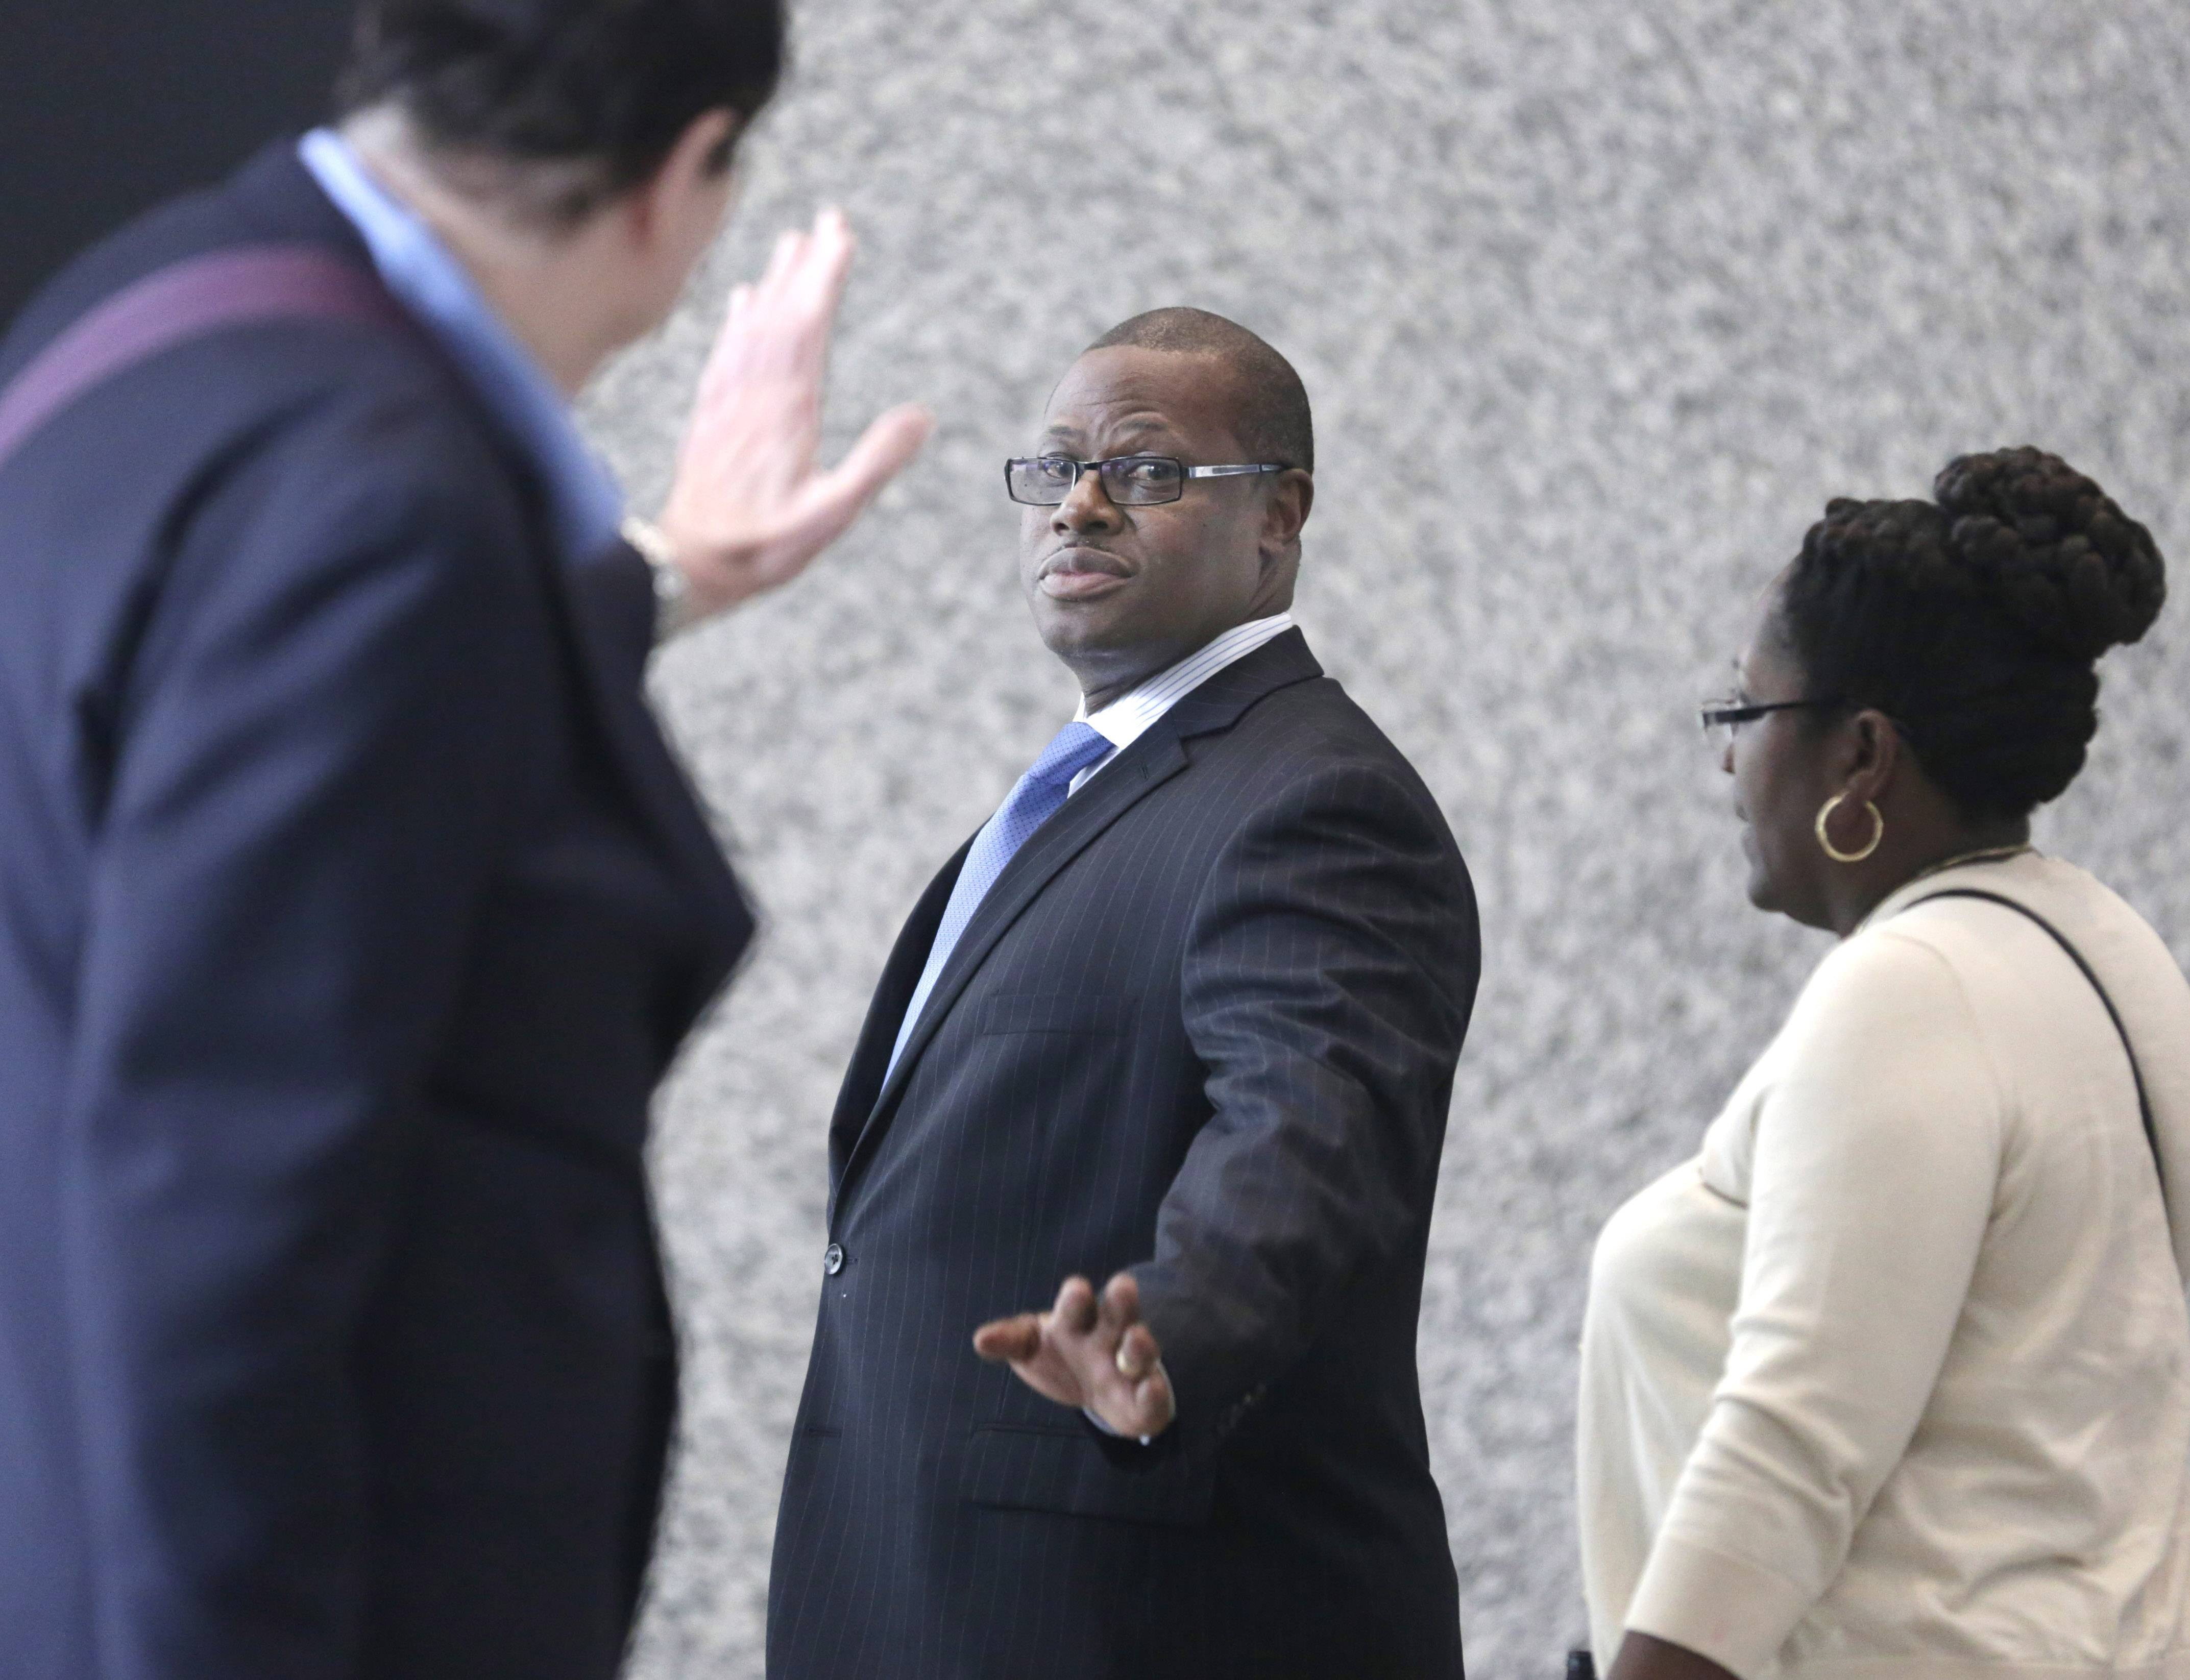 State Rep. Derrick Smith, center, waves as he enters federal court for the beginning of jury selection in his corruption trial Wednesday in Chicago. The Chicago Democrat has been charged with accepting a $7,000 bribe in exchange for using his influence to obtain a state grant for a day care center.